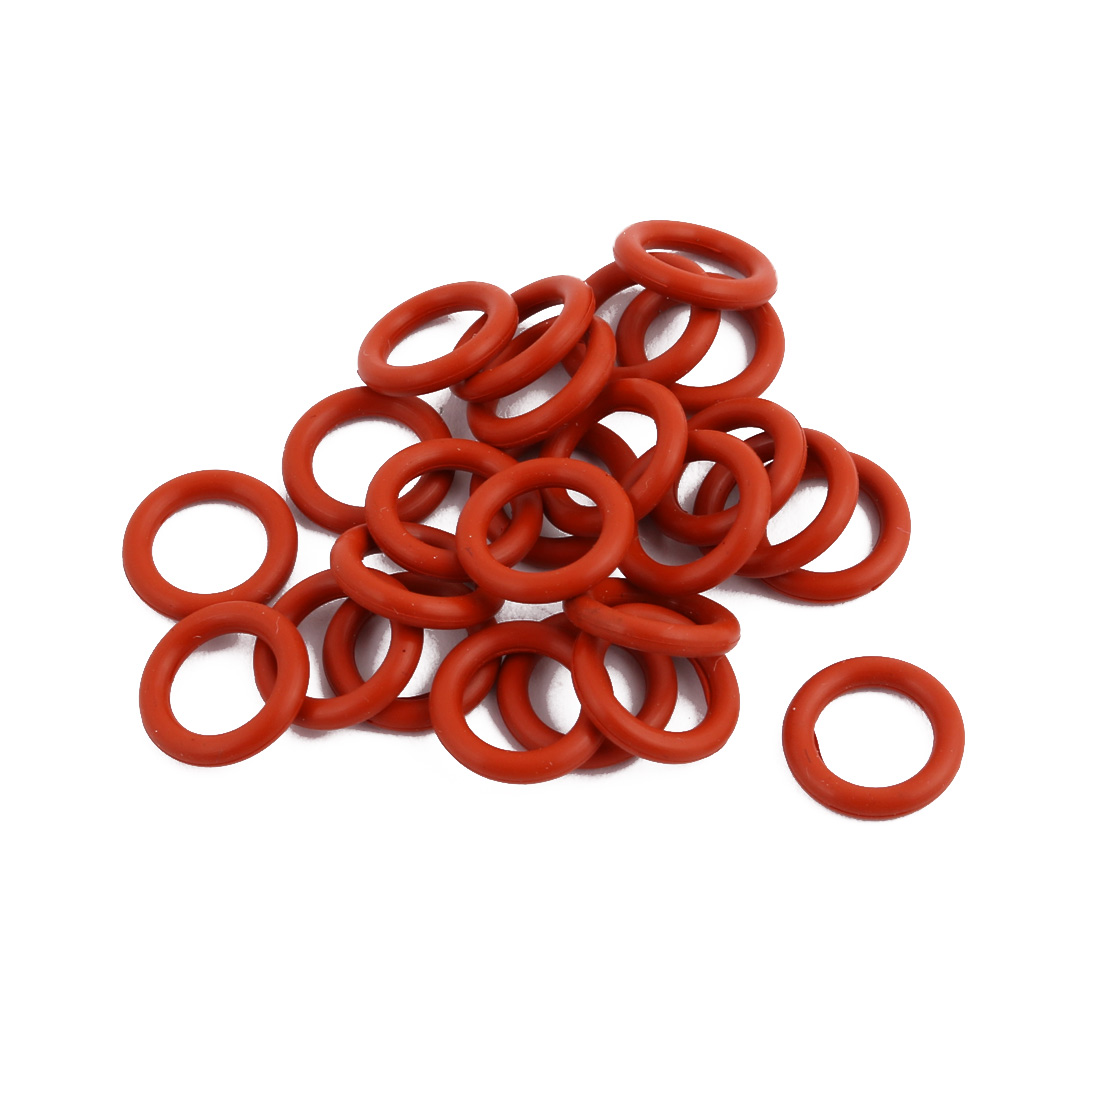 25Pcs Red Round Nitrile Butadiene Rubber NBR O-Ring 11mm OD 1.9mm Width